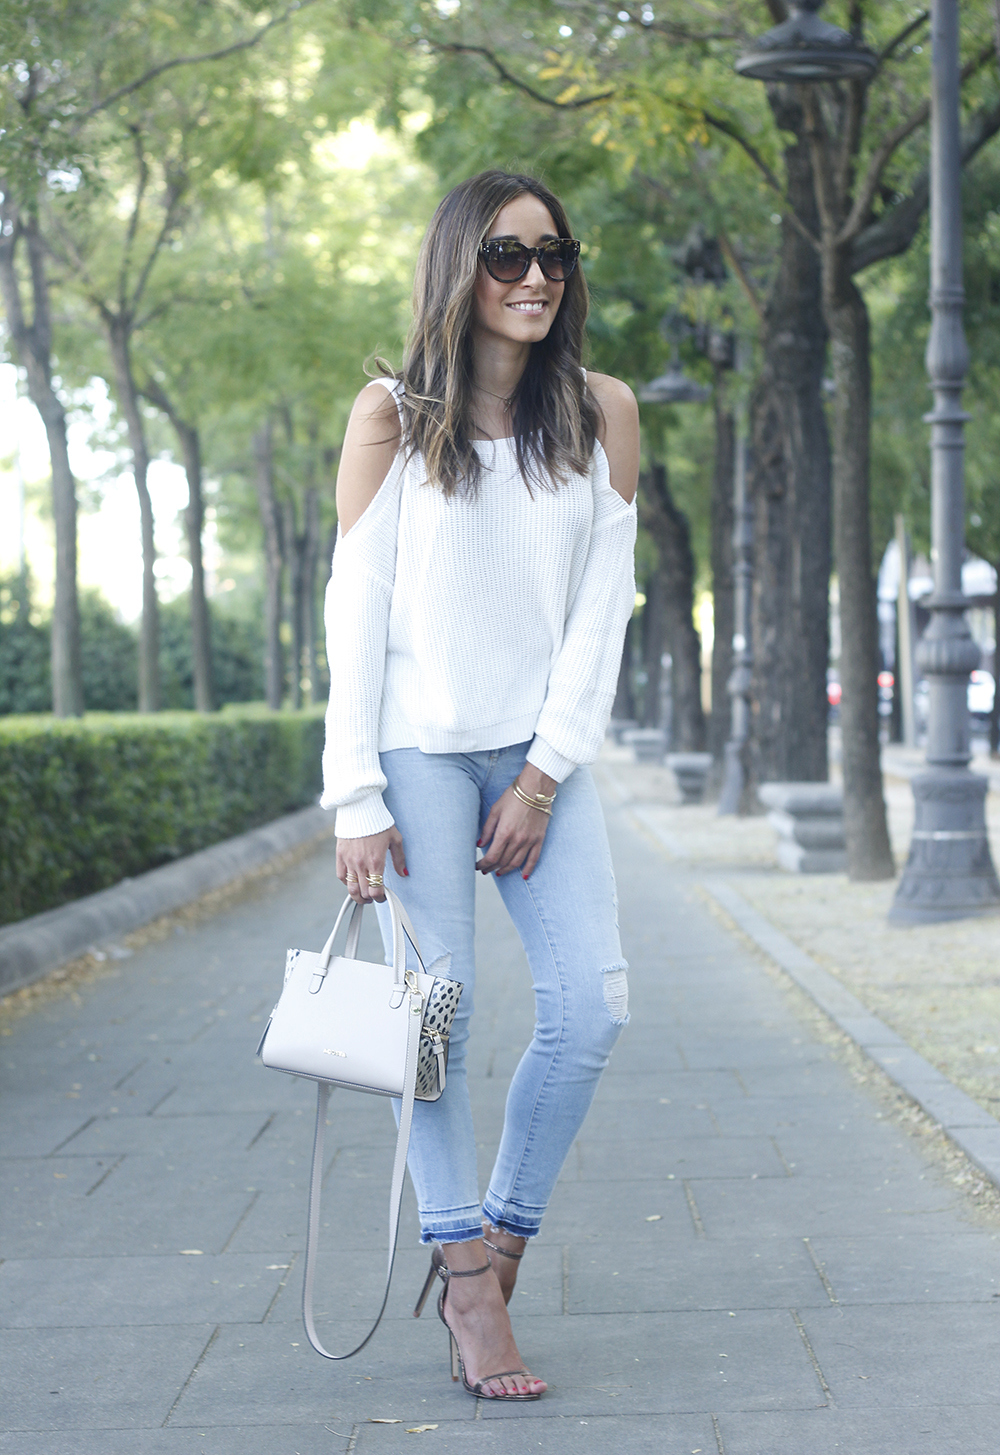 White off the shoulder sweater jeans acosta bag heels outfit style05